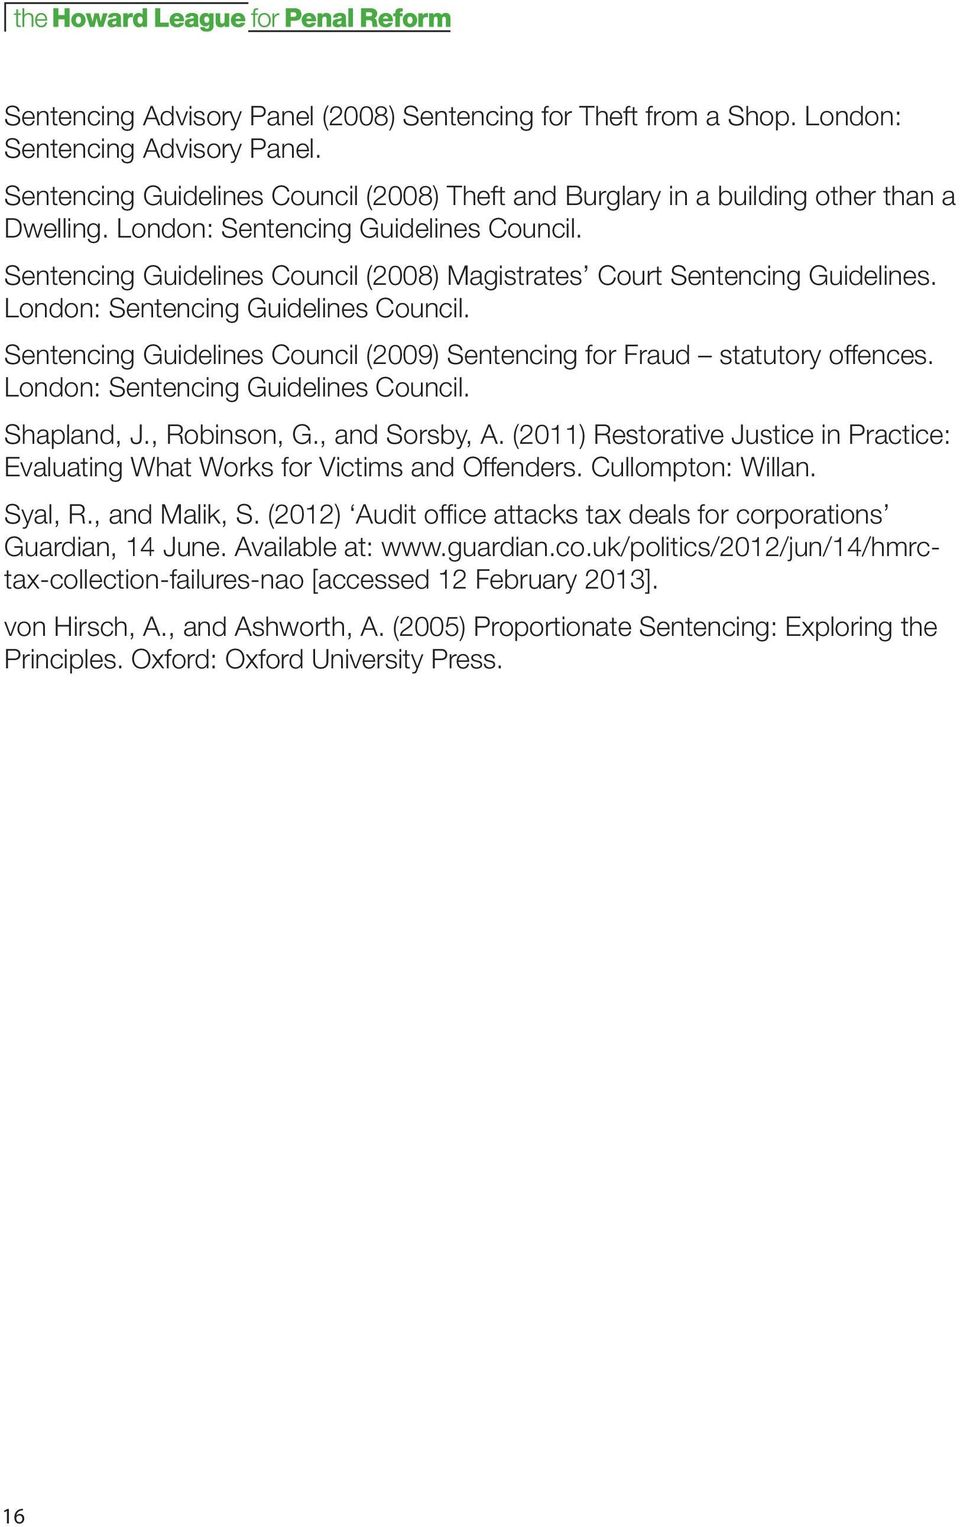 Sentencing Guidelines Council (2009) Sentencing for Fraud statutory offences. London: Sentencing Guidelines Council. Shapland, J., Robinson, G., and Sorsby, A.